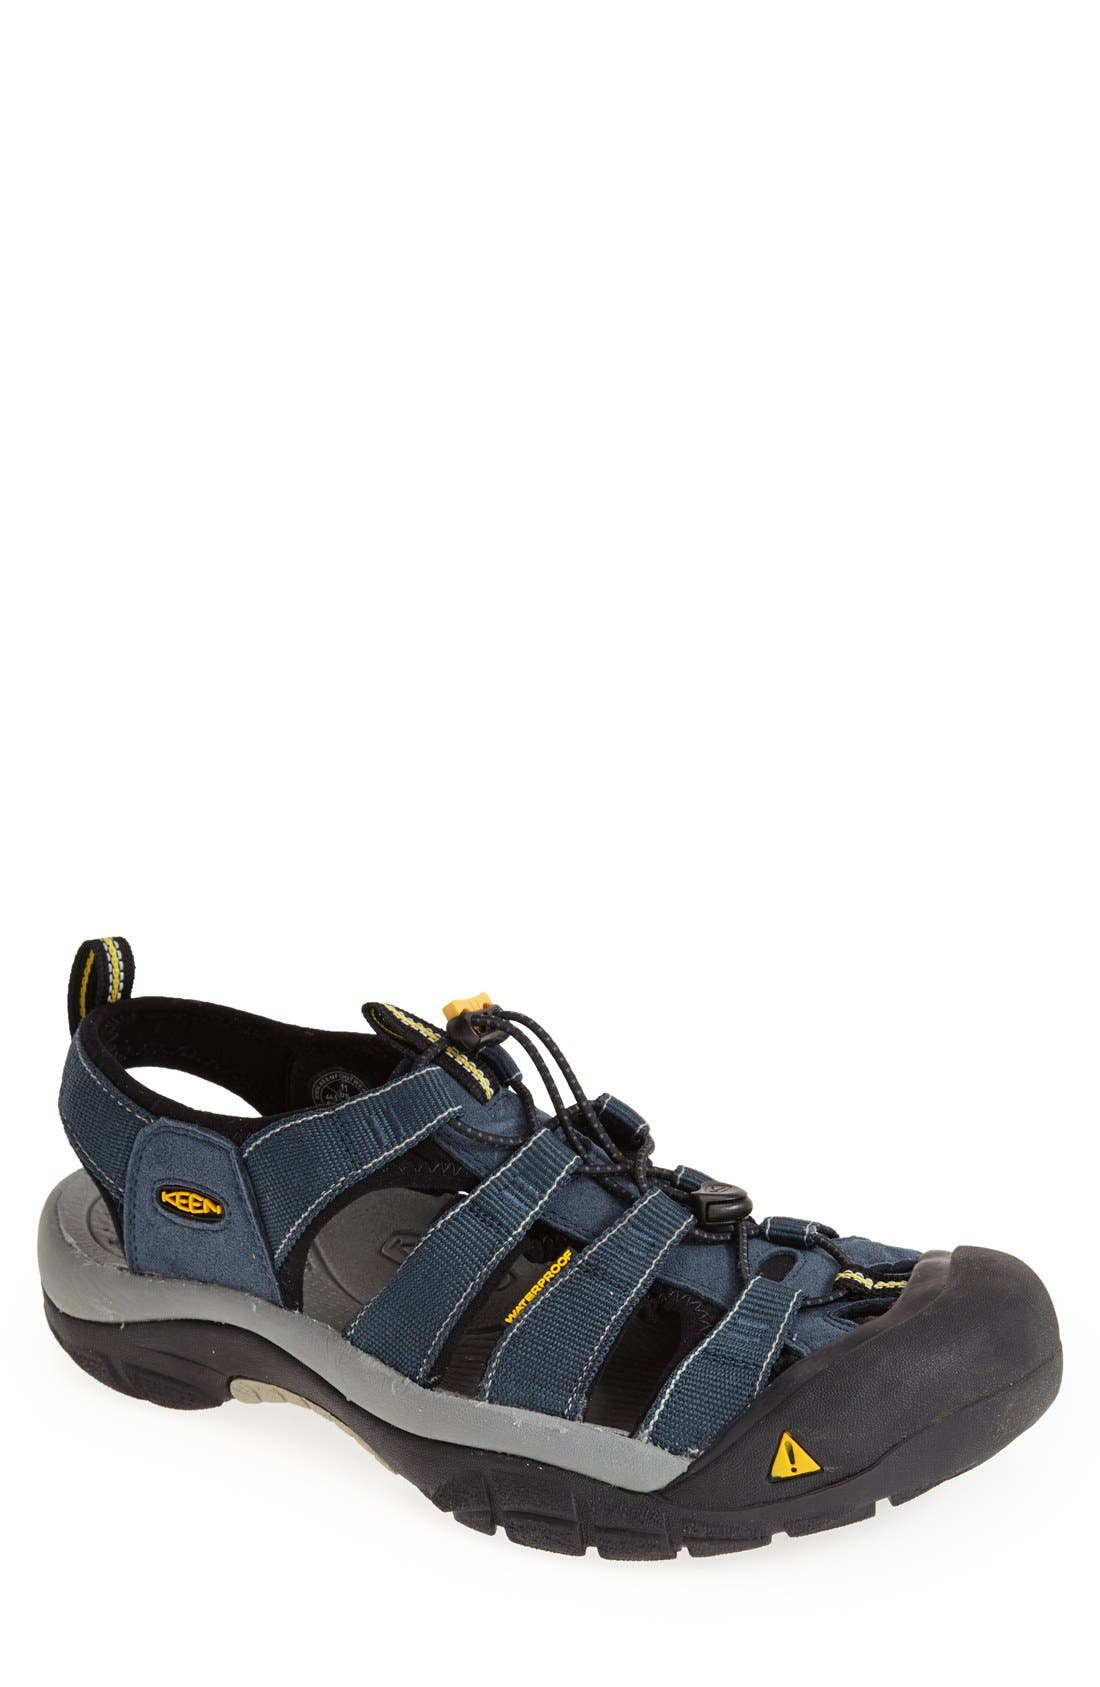 Alternate Image 1 Selected - Keen 'Newport H2' Sandal (Men)